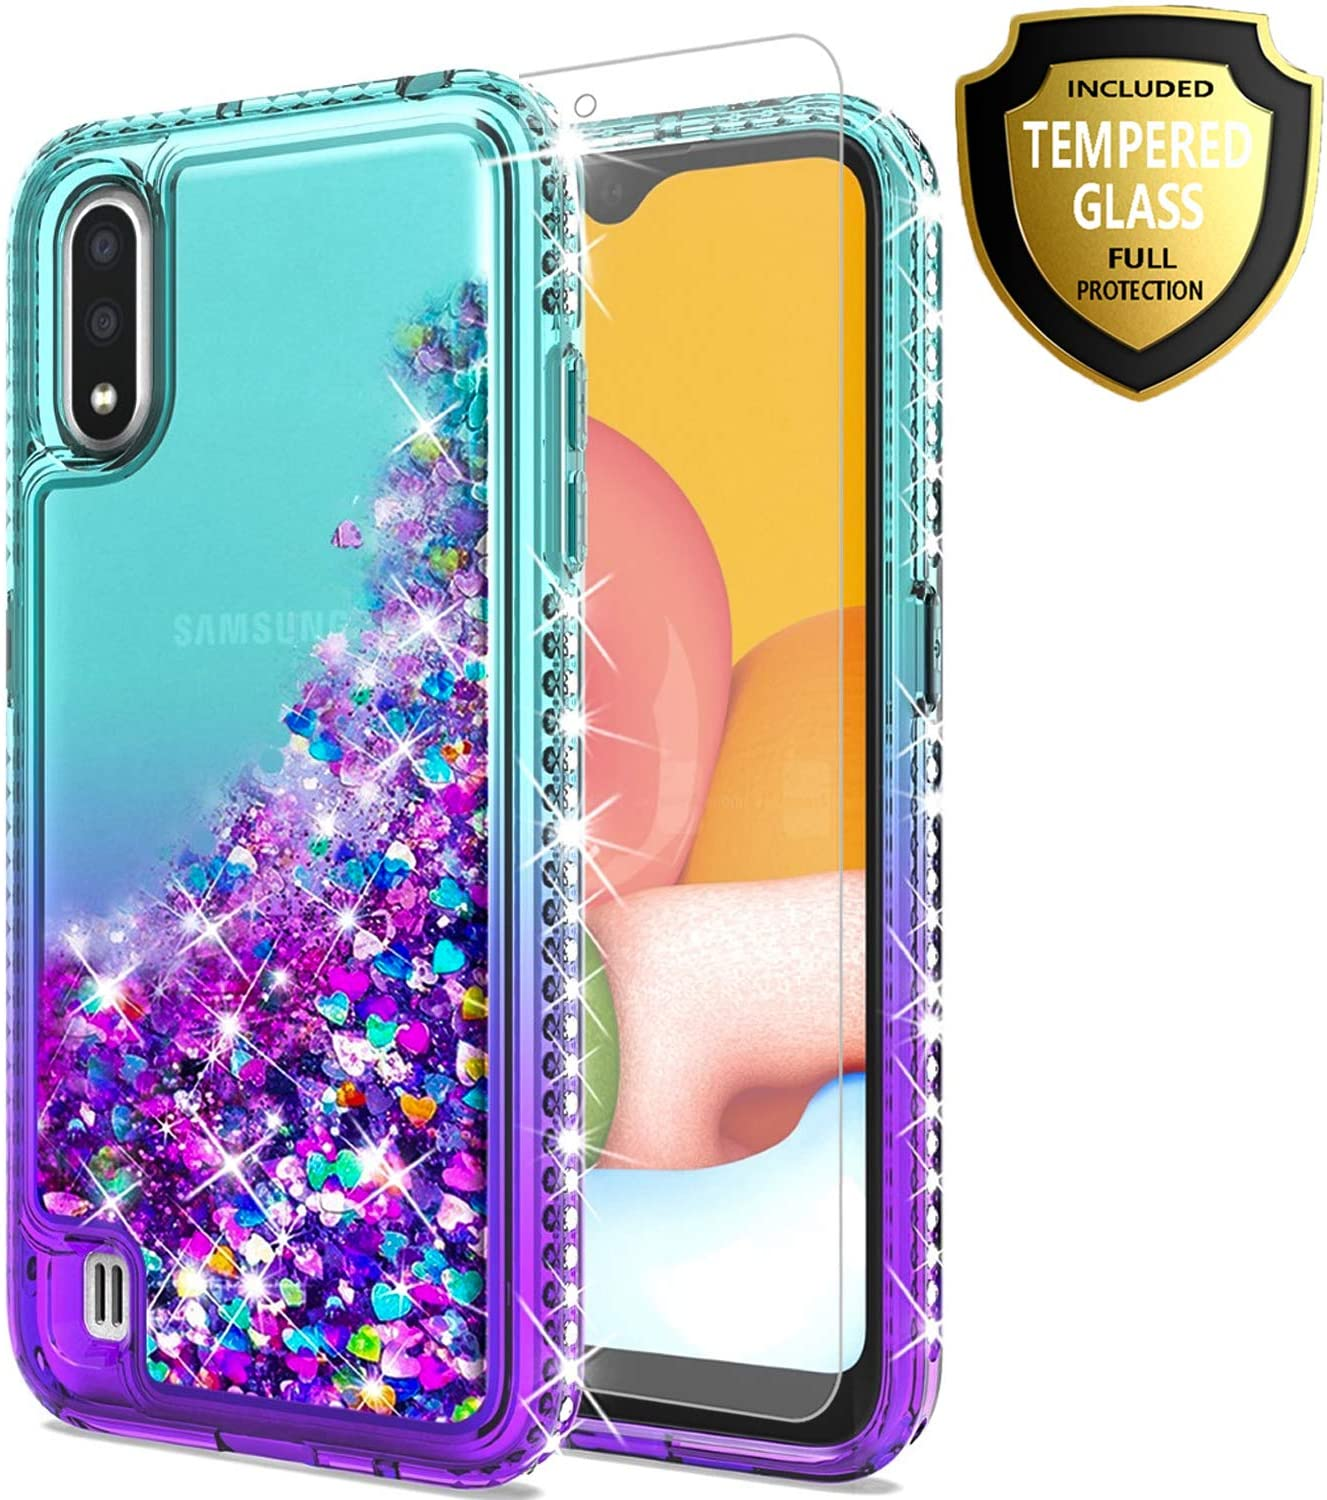 STARSHOP Samsung Galaxy A01 Phone Case, with [Tempered Glass Protector Included] Liquid Floating Glitter Quicksand Bling with Spot Diamond Cover - Teal/Purple